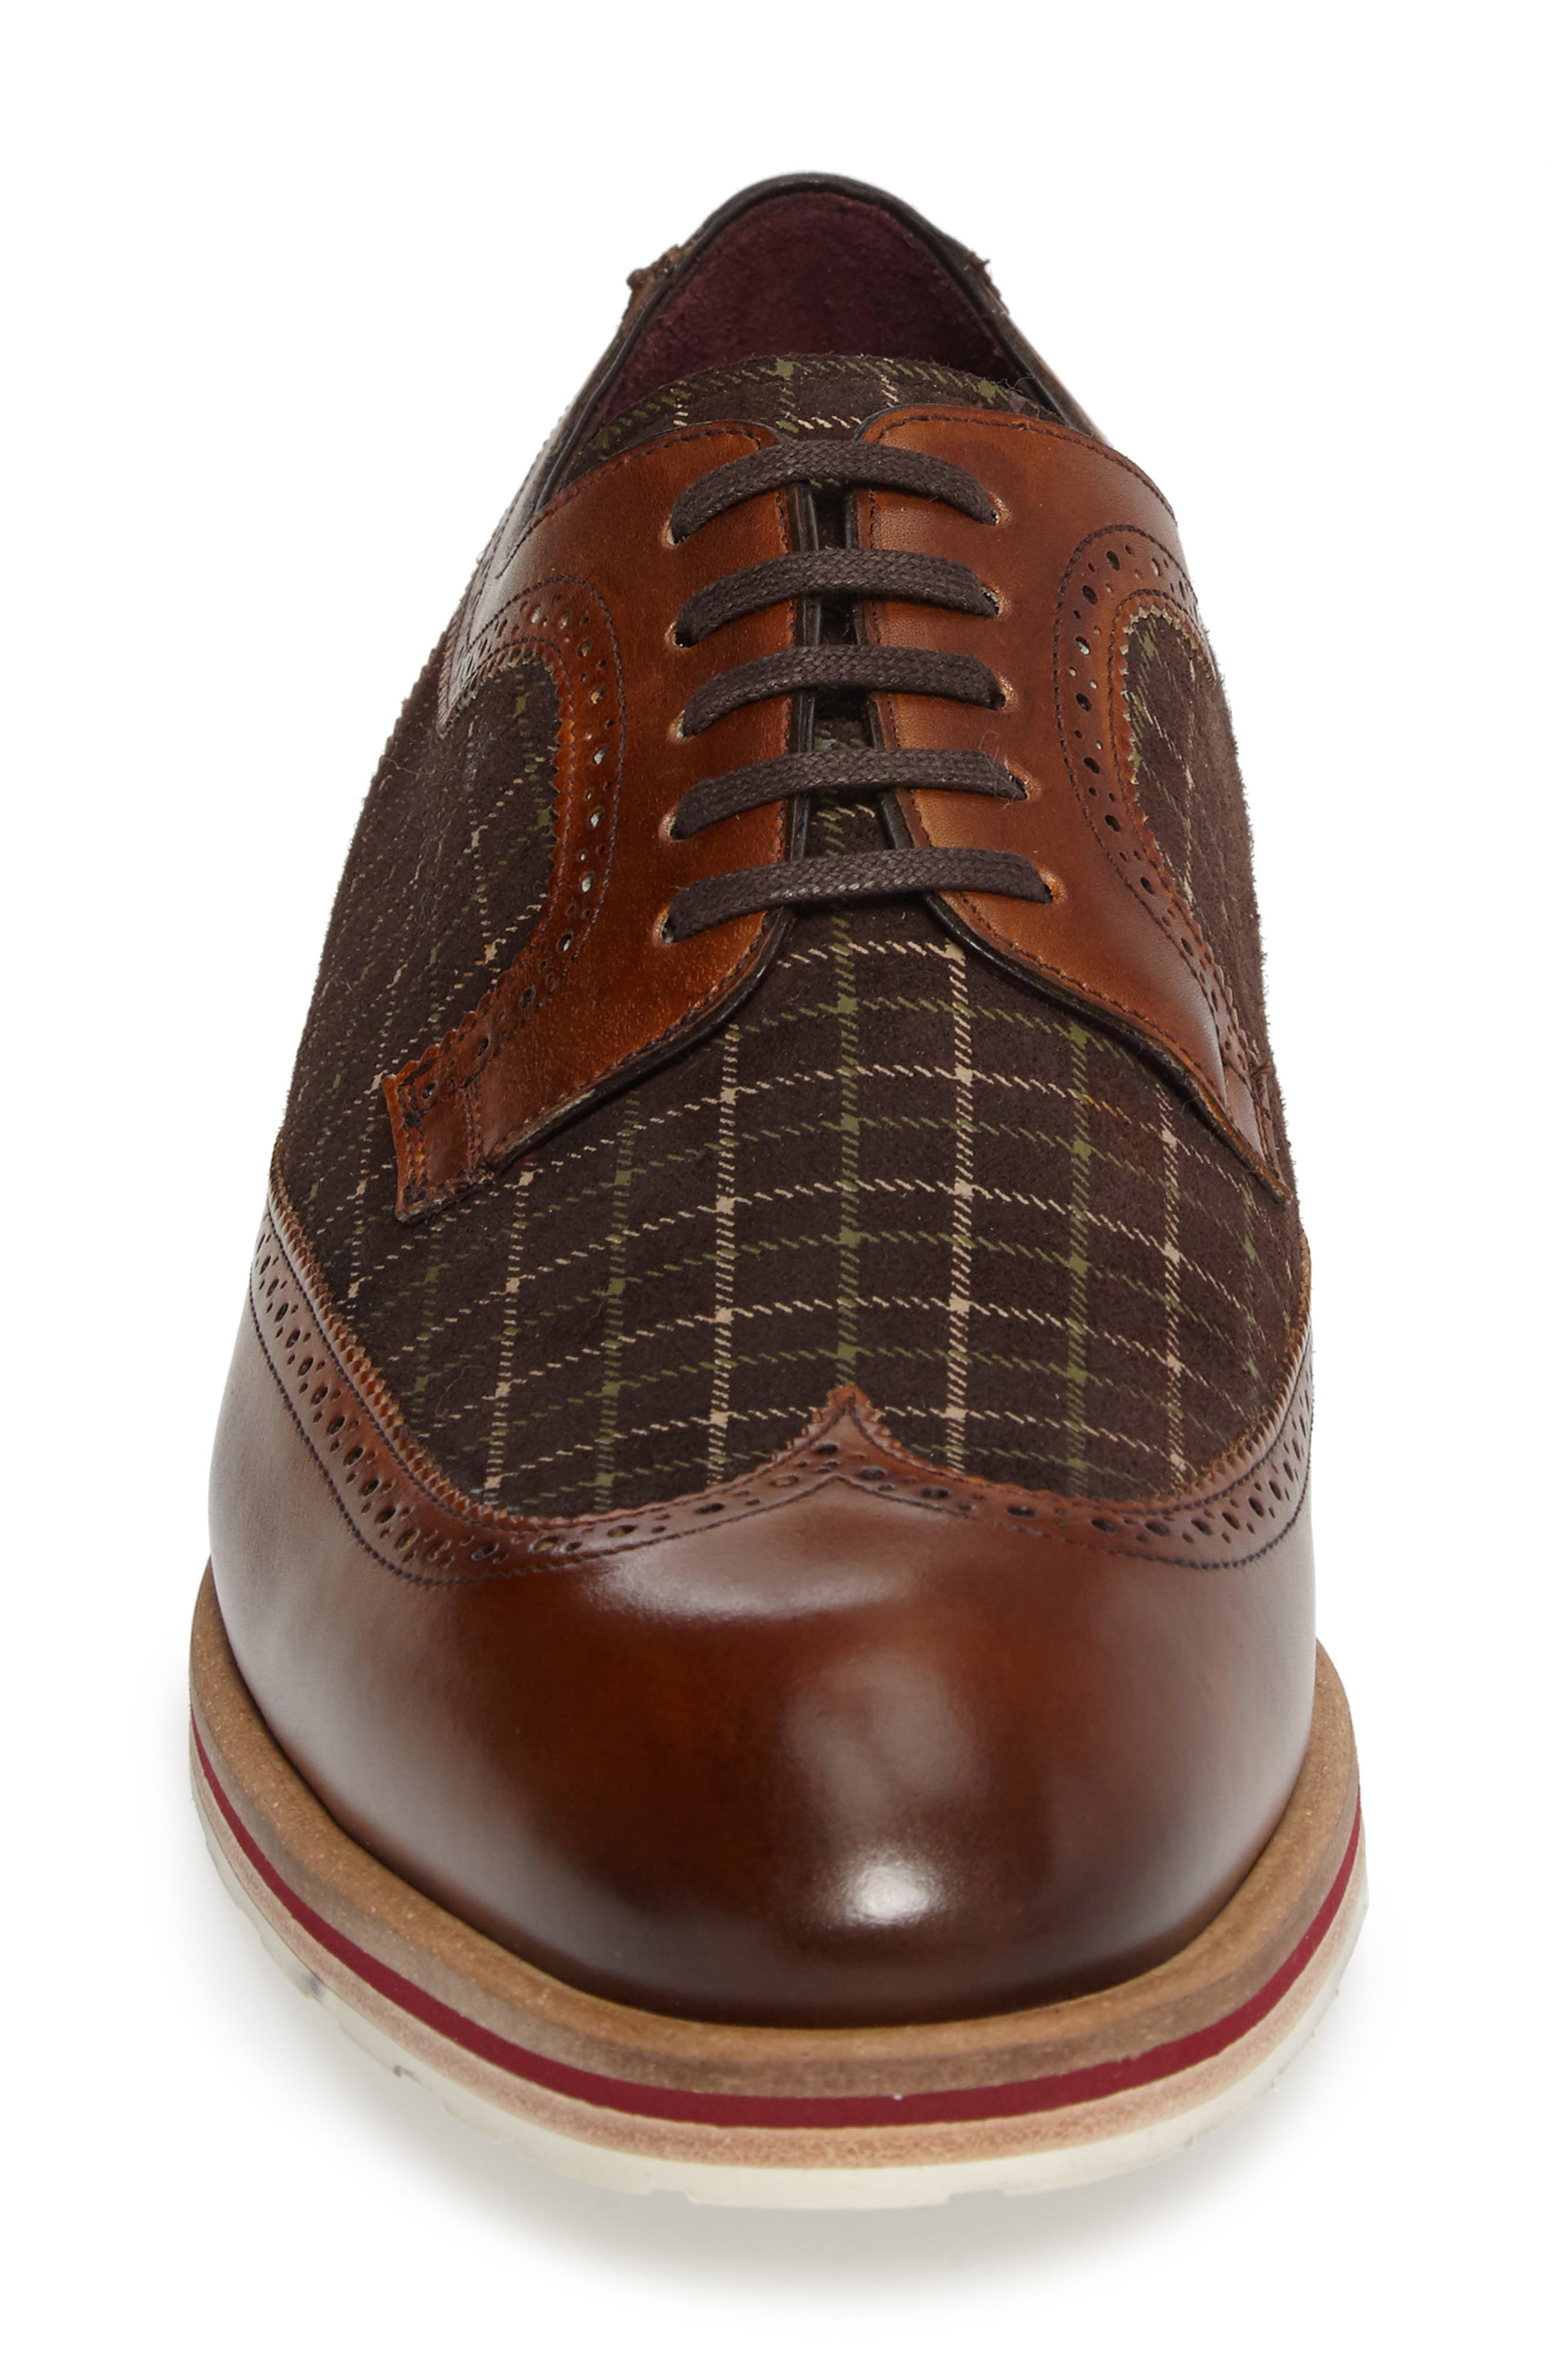 Paulov Tattersall Wingtip,                             Alternate thumbnail 4, color,                             Cognac/ Brown Leather